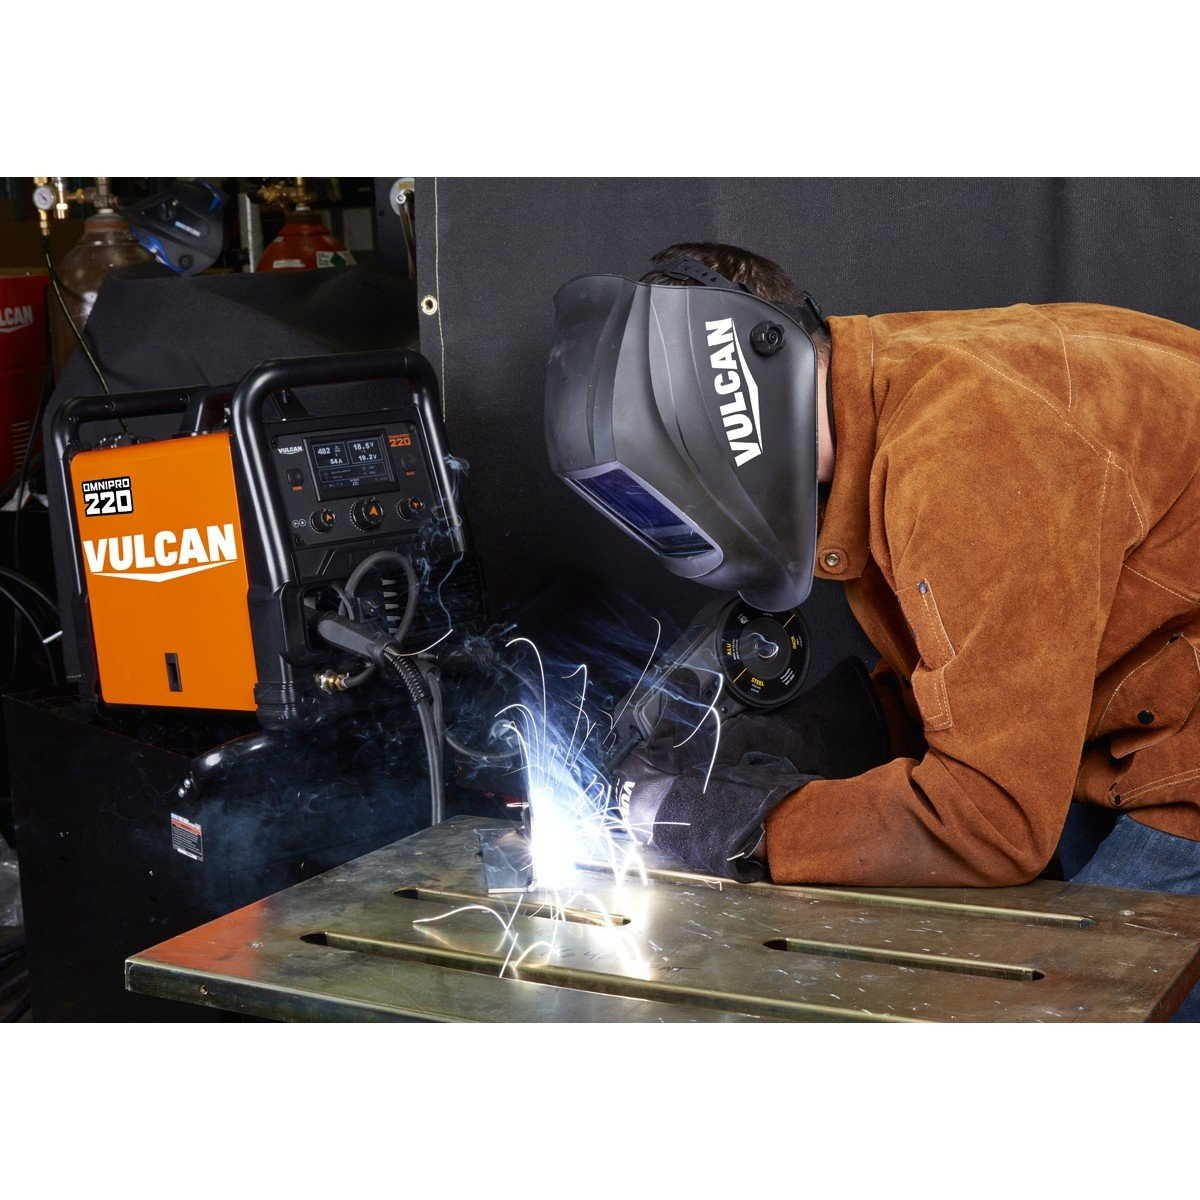 Vulcan OmniPro 220 Multiprocess Welder with 120/240 Volt Input by Vulcan (Image #9)